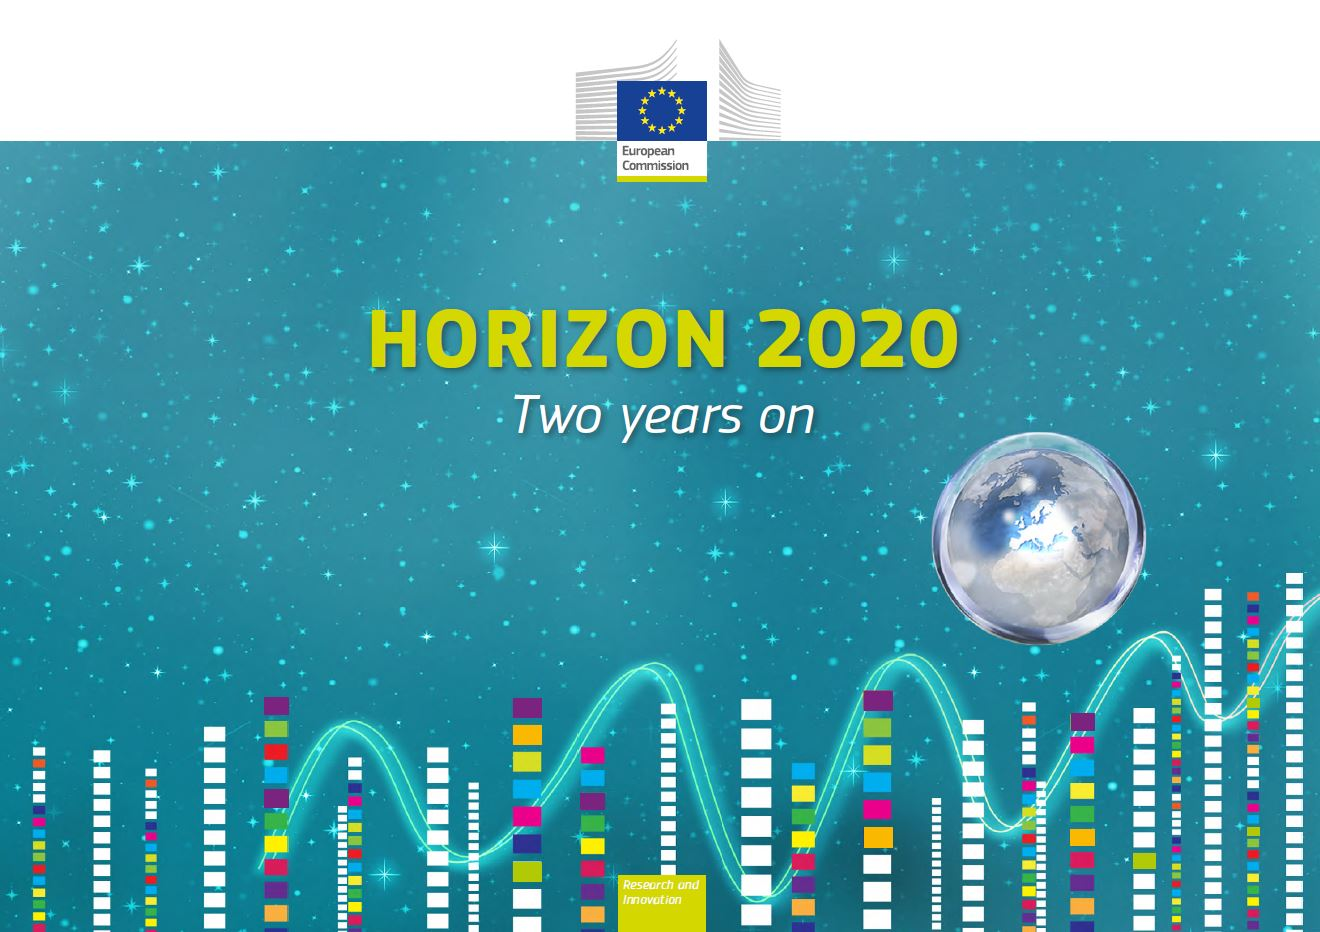 H2020-Two years on